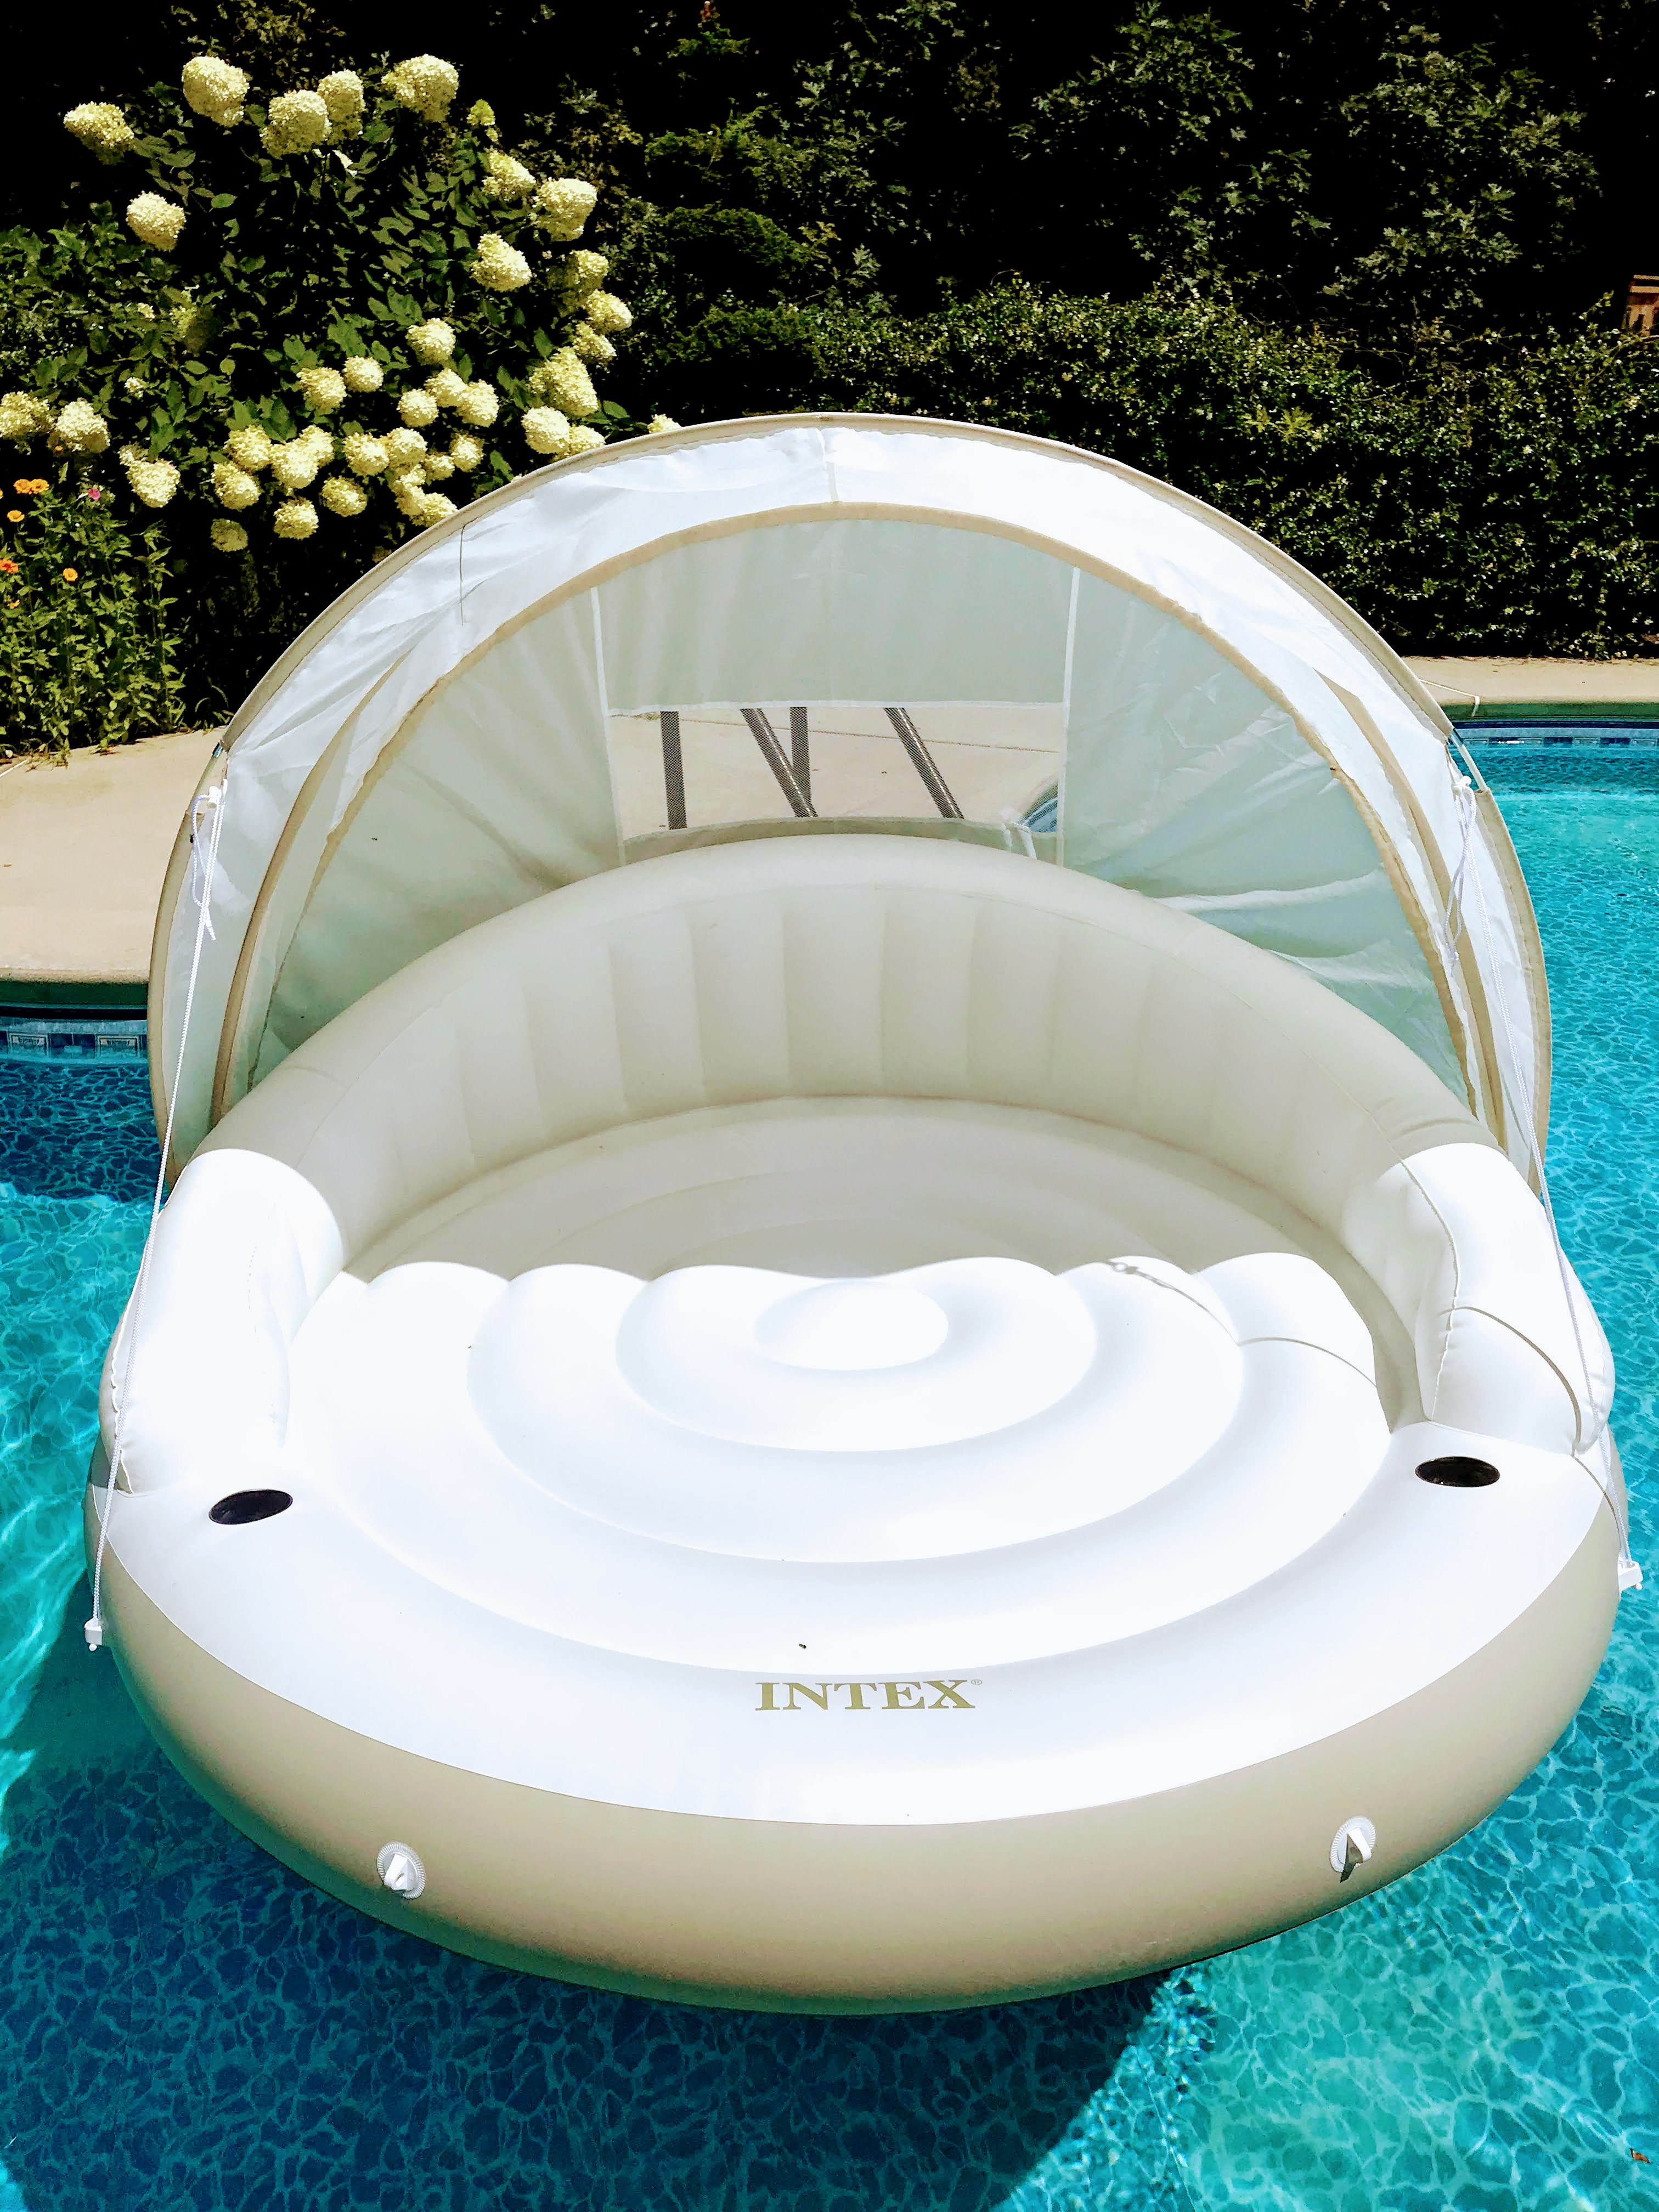 2 person pool float with a canopy